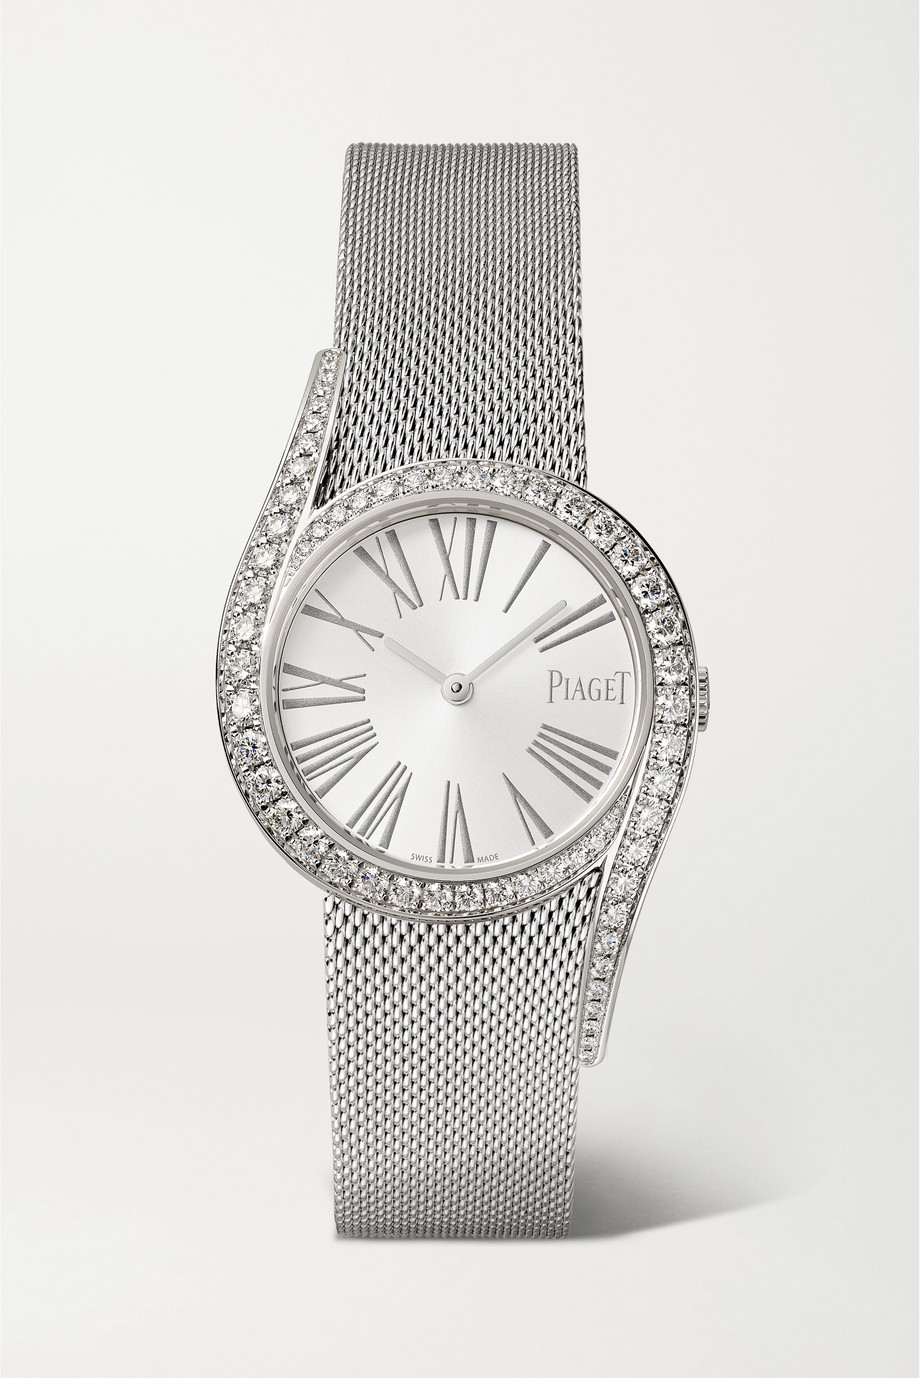 Piaget Limelight Gala 32mm 18-karat white gold and diamond watch